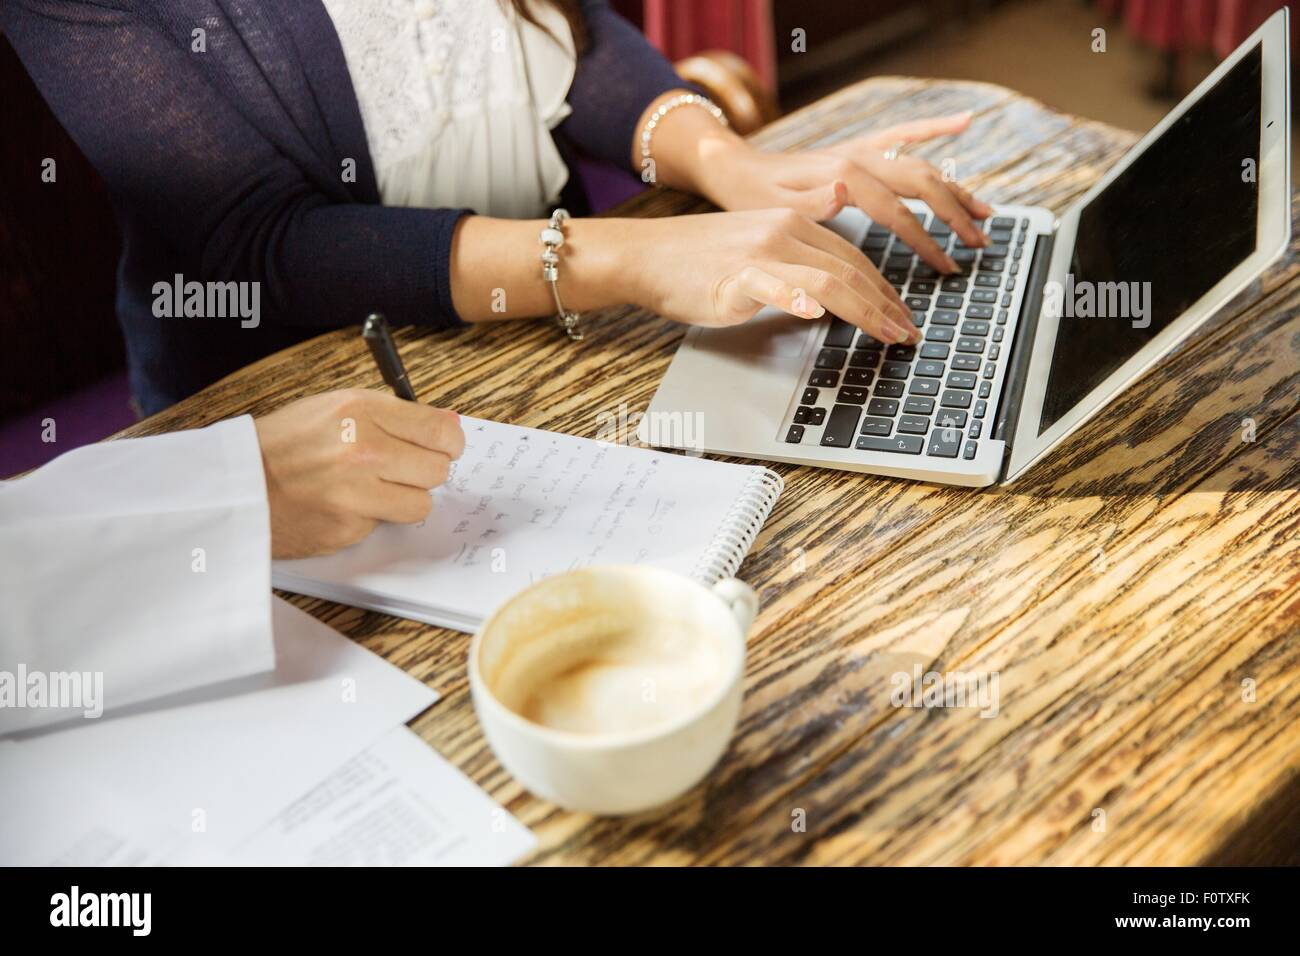 Close up of couples hands using laptop, writing, cropped - Stock Image